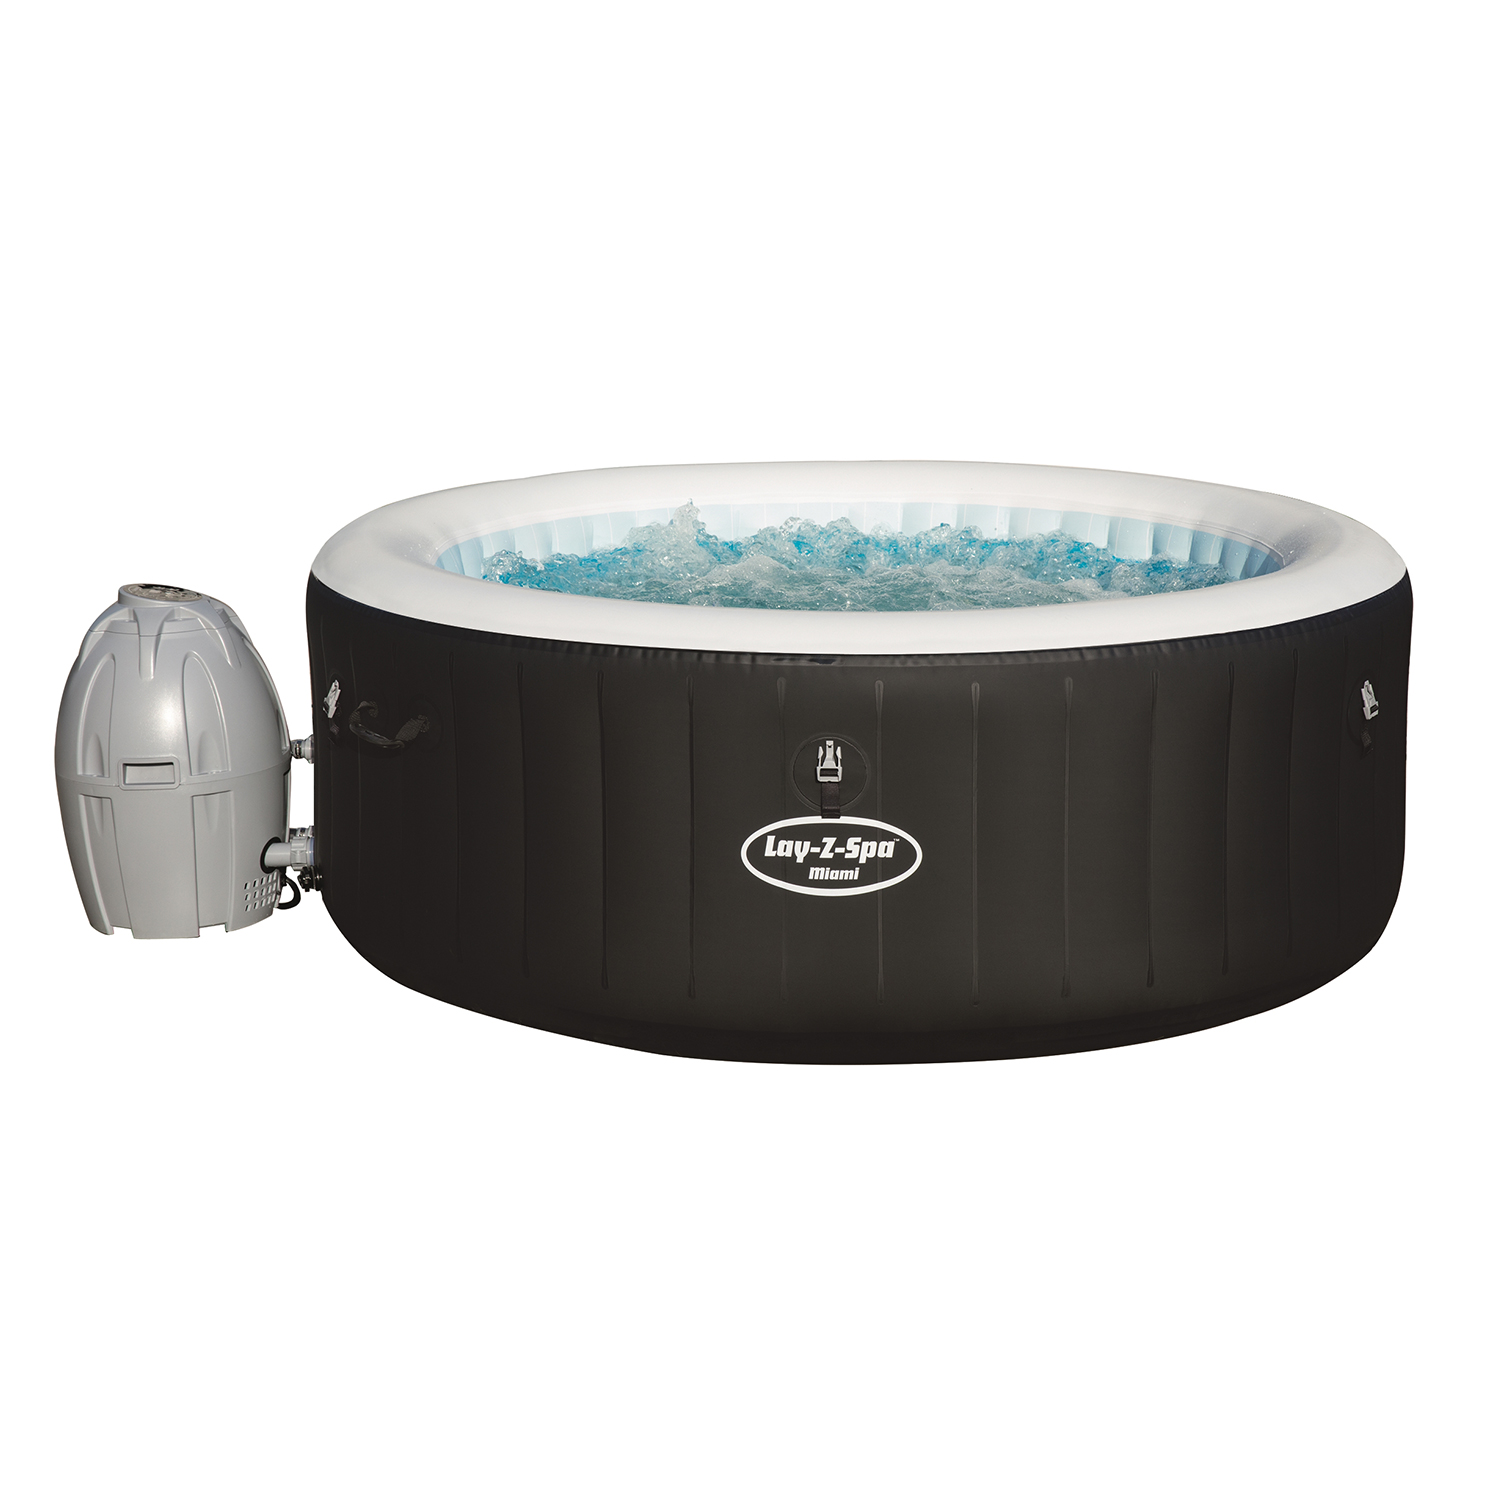 Piscina lay z spa miami airjet 669 litros x 66cm - Lay z spa miami ...